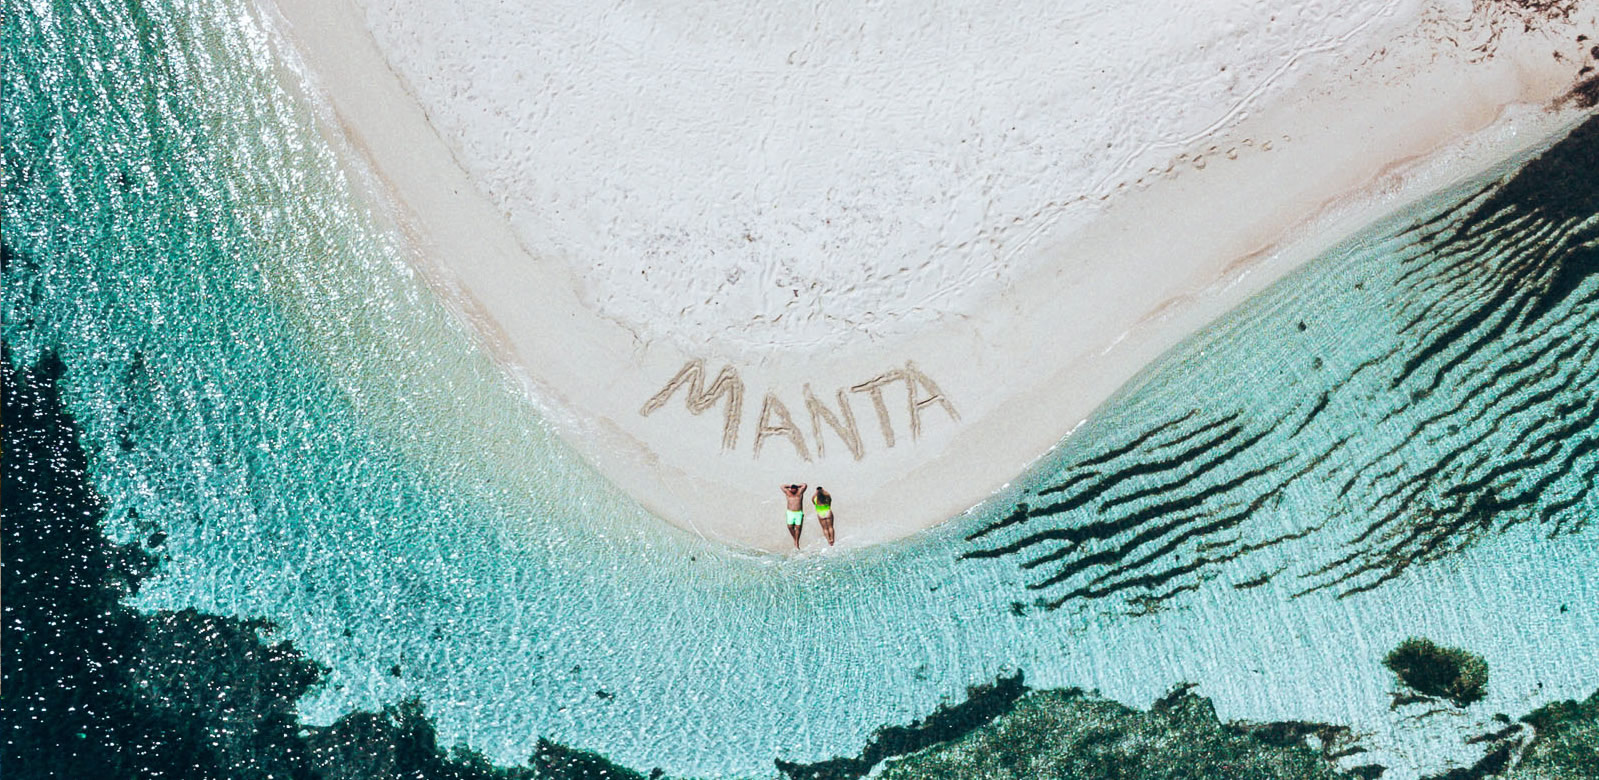 Belize All Inclusive Vacation Packages - Manta Sand